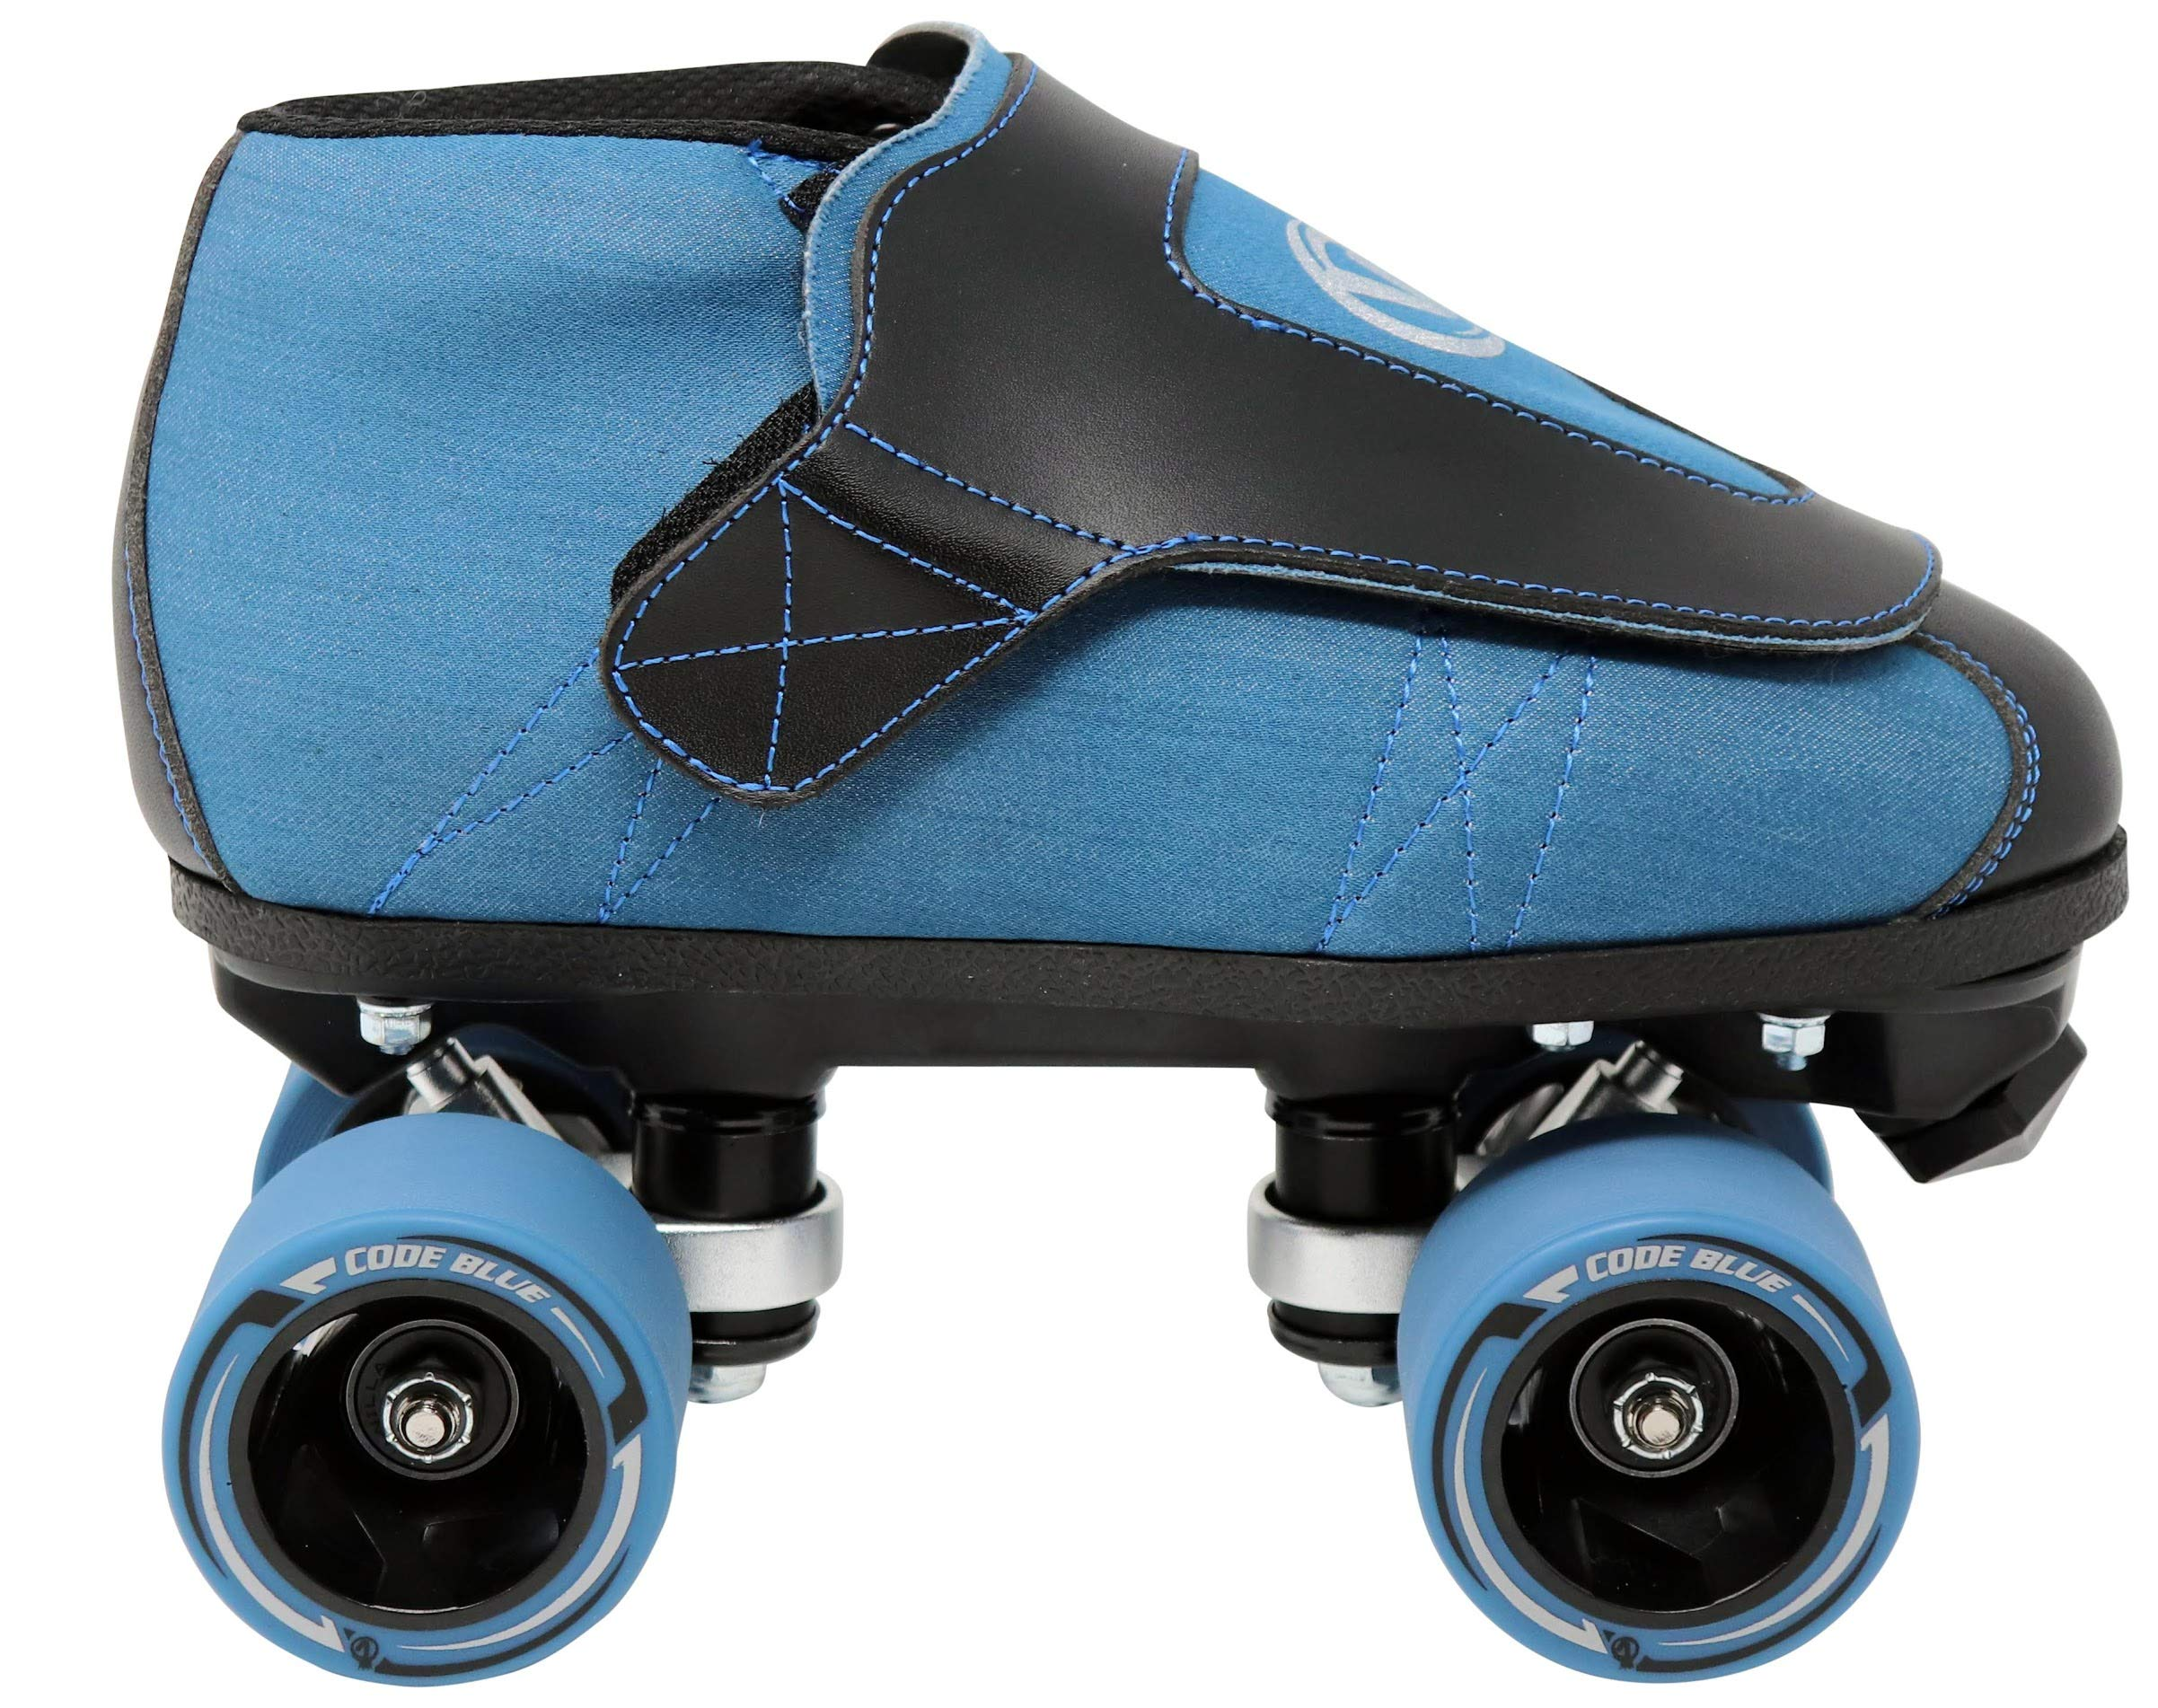 VNLA Code Blue Jam Skate - Mens & Womens Speed Skates - Quad Skates for Women & Men - Adjustable Roller Skate/Rollerskates - Outdoor & Indoor Adult Quad Skate - Kid/Kids Roller Skates (Size 5) by VNLA (Image #2)